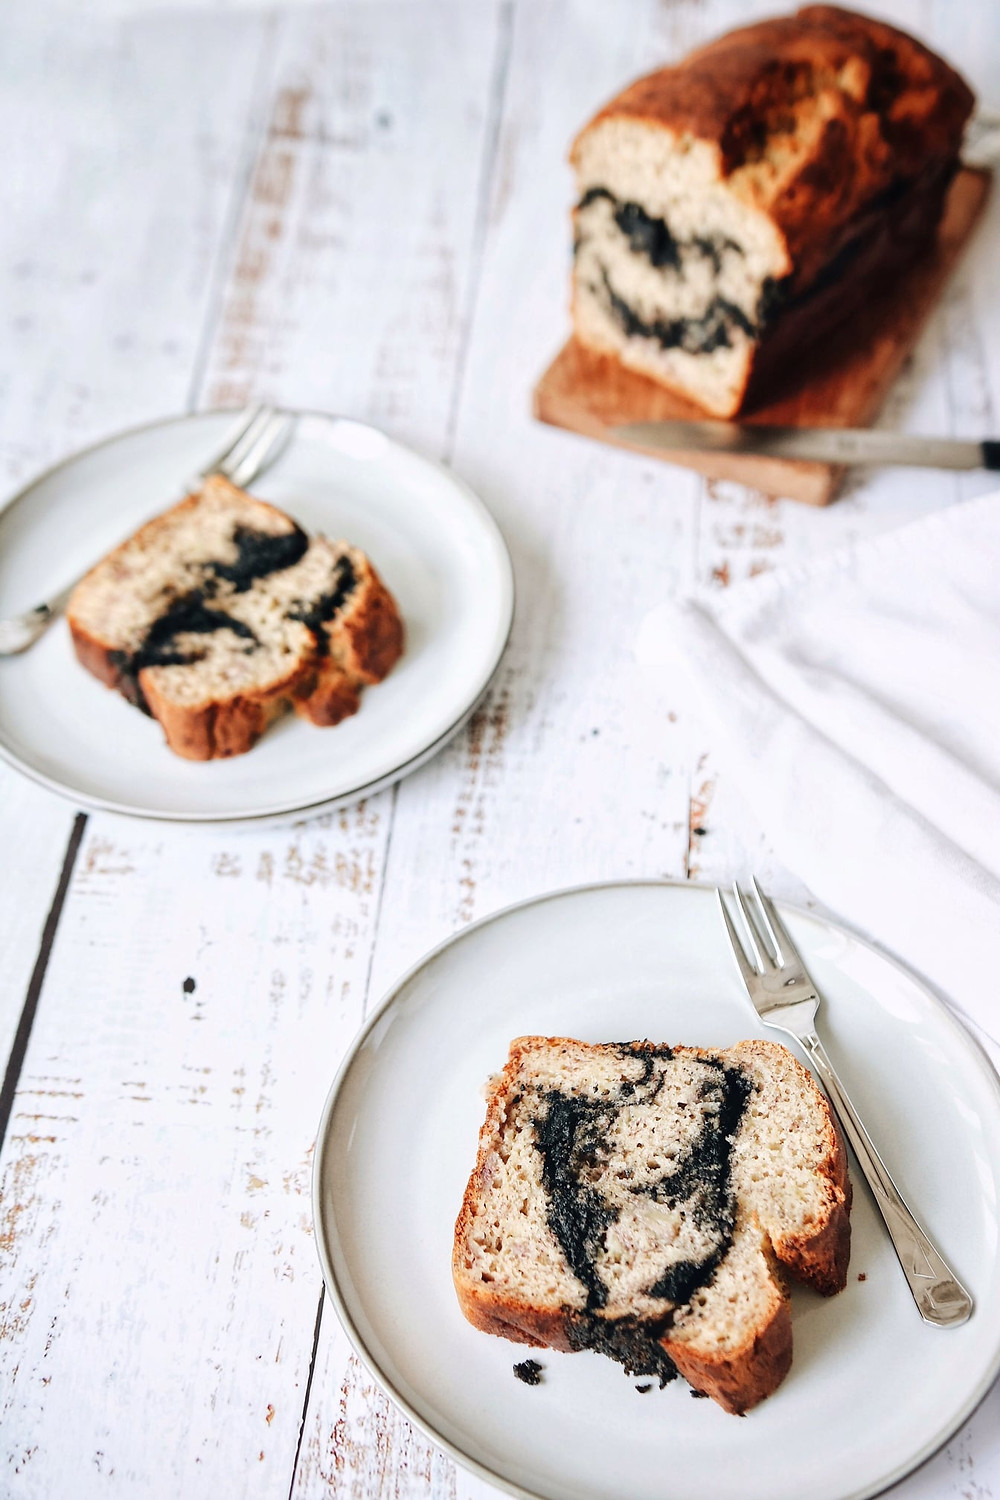 Two cut pieces of a gluten free banana bread with a black sesame paste swirl on plates on a white background, the rest of the loaf is on a cutting board in the background.